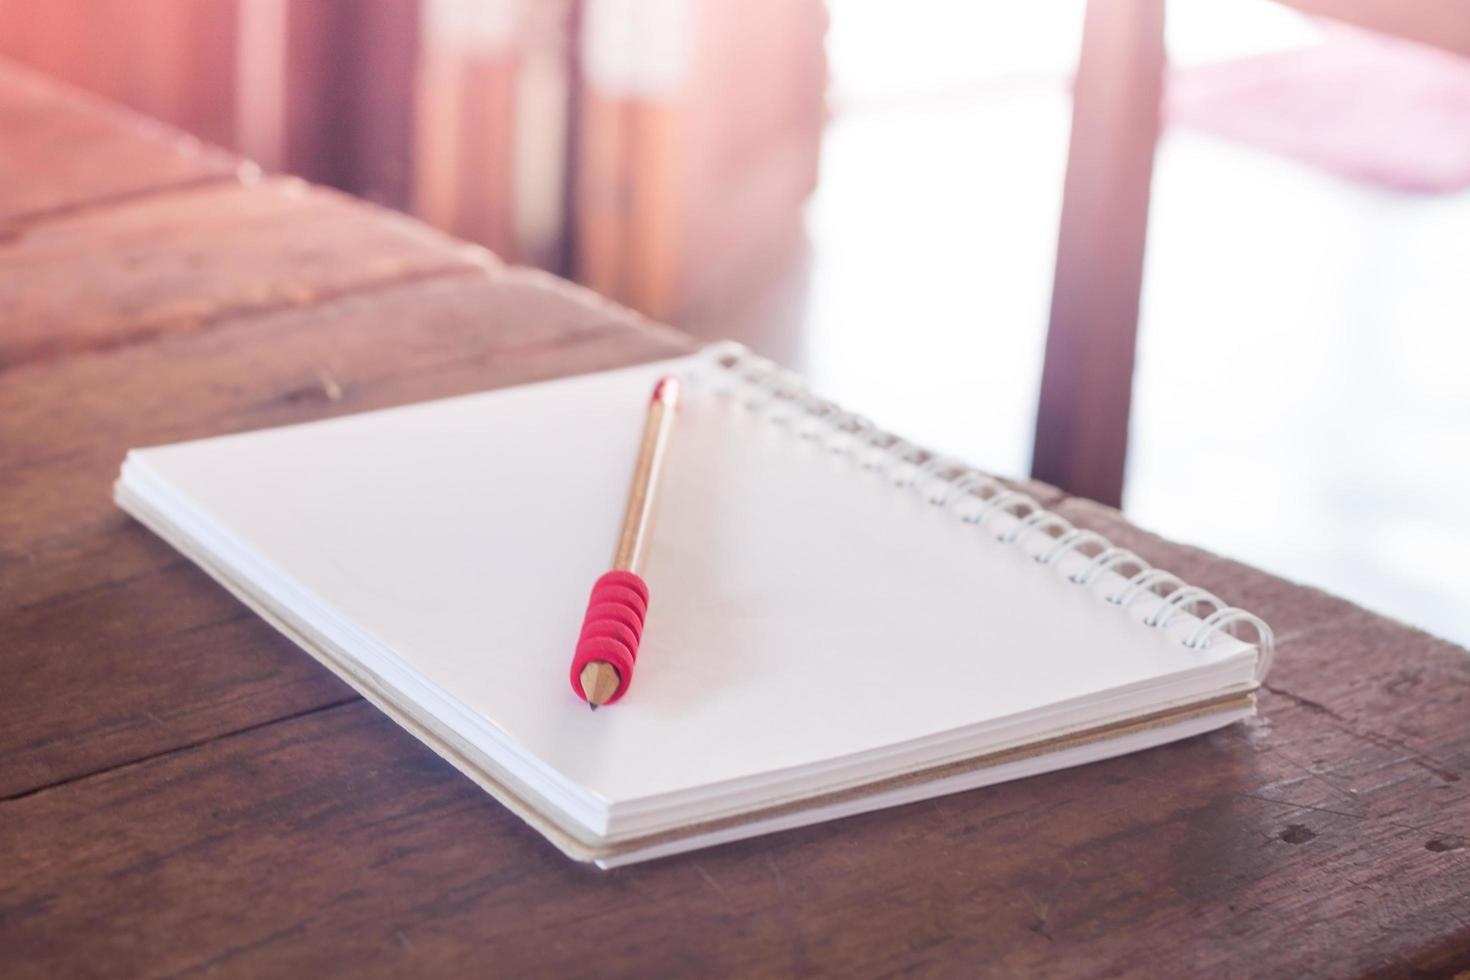 Sunlight on a table with a notebook and pencil photo